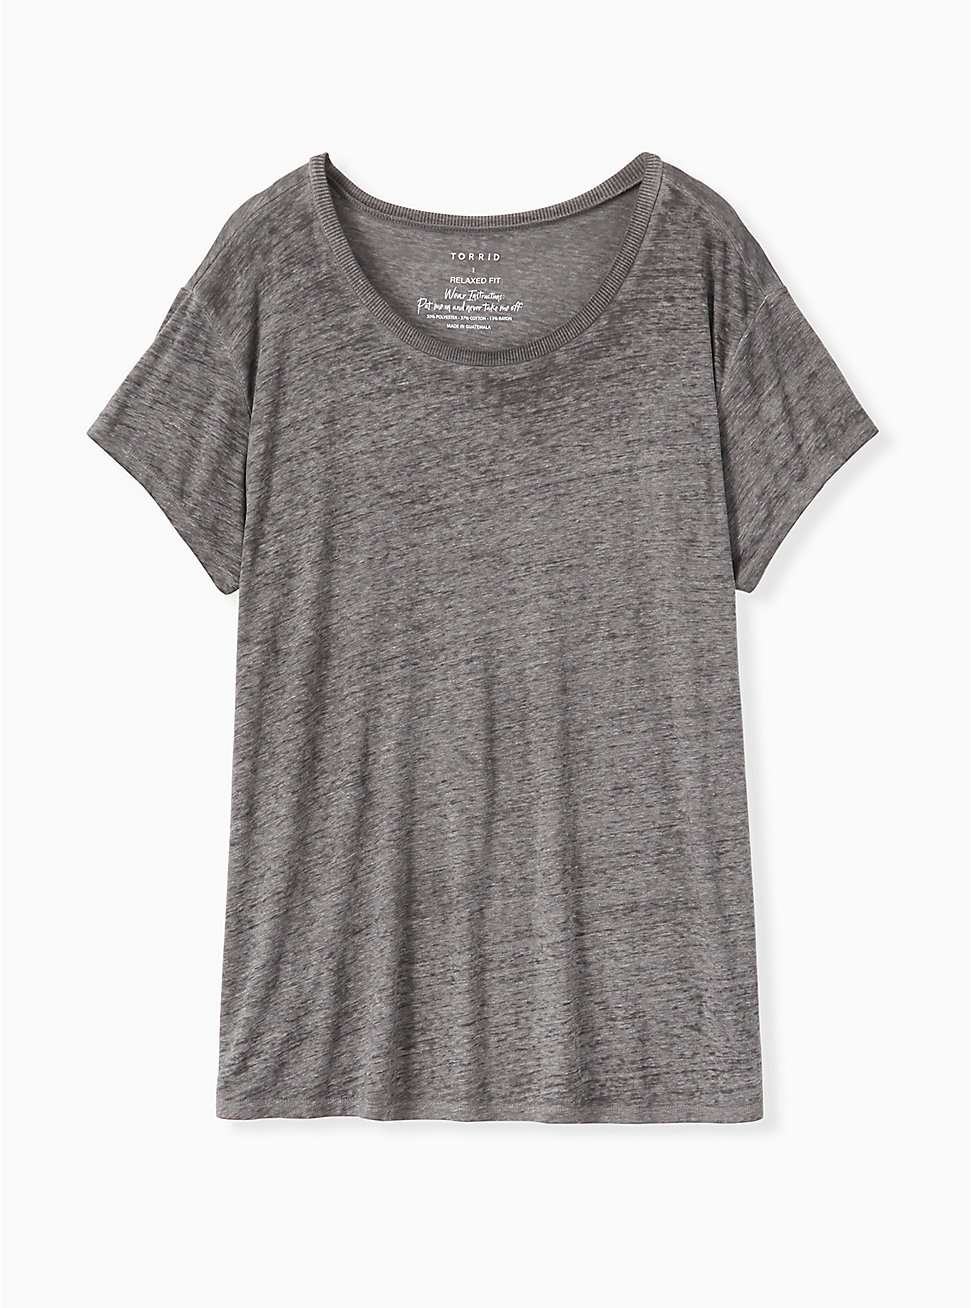 Plus Size Relaxed Fit Crew Tee - Vintage Burnout Grey, HEATHER GREY, hi-res